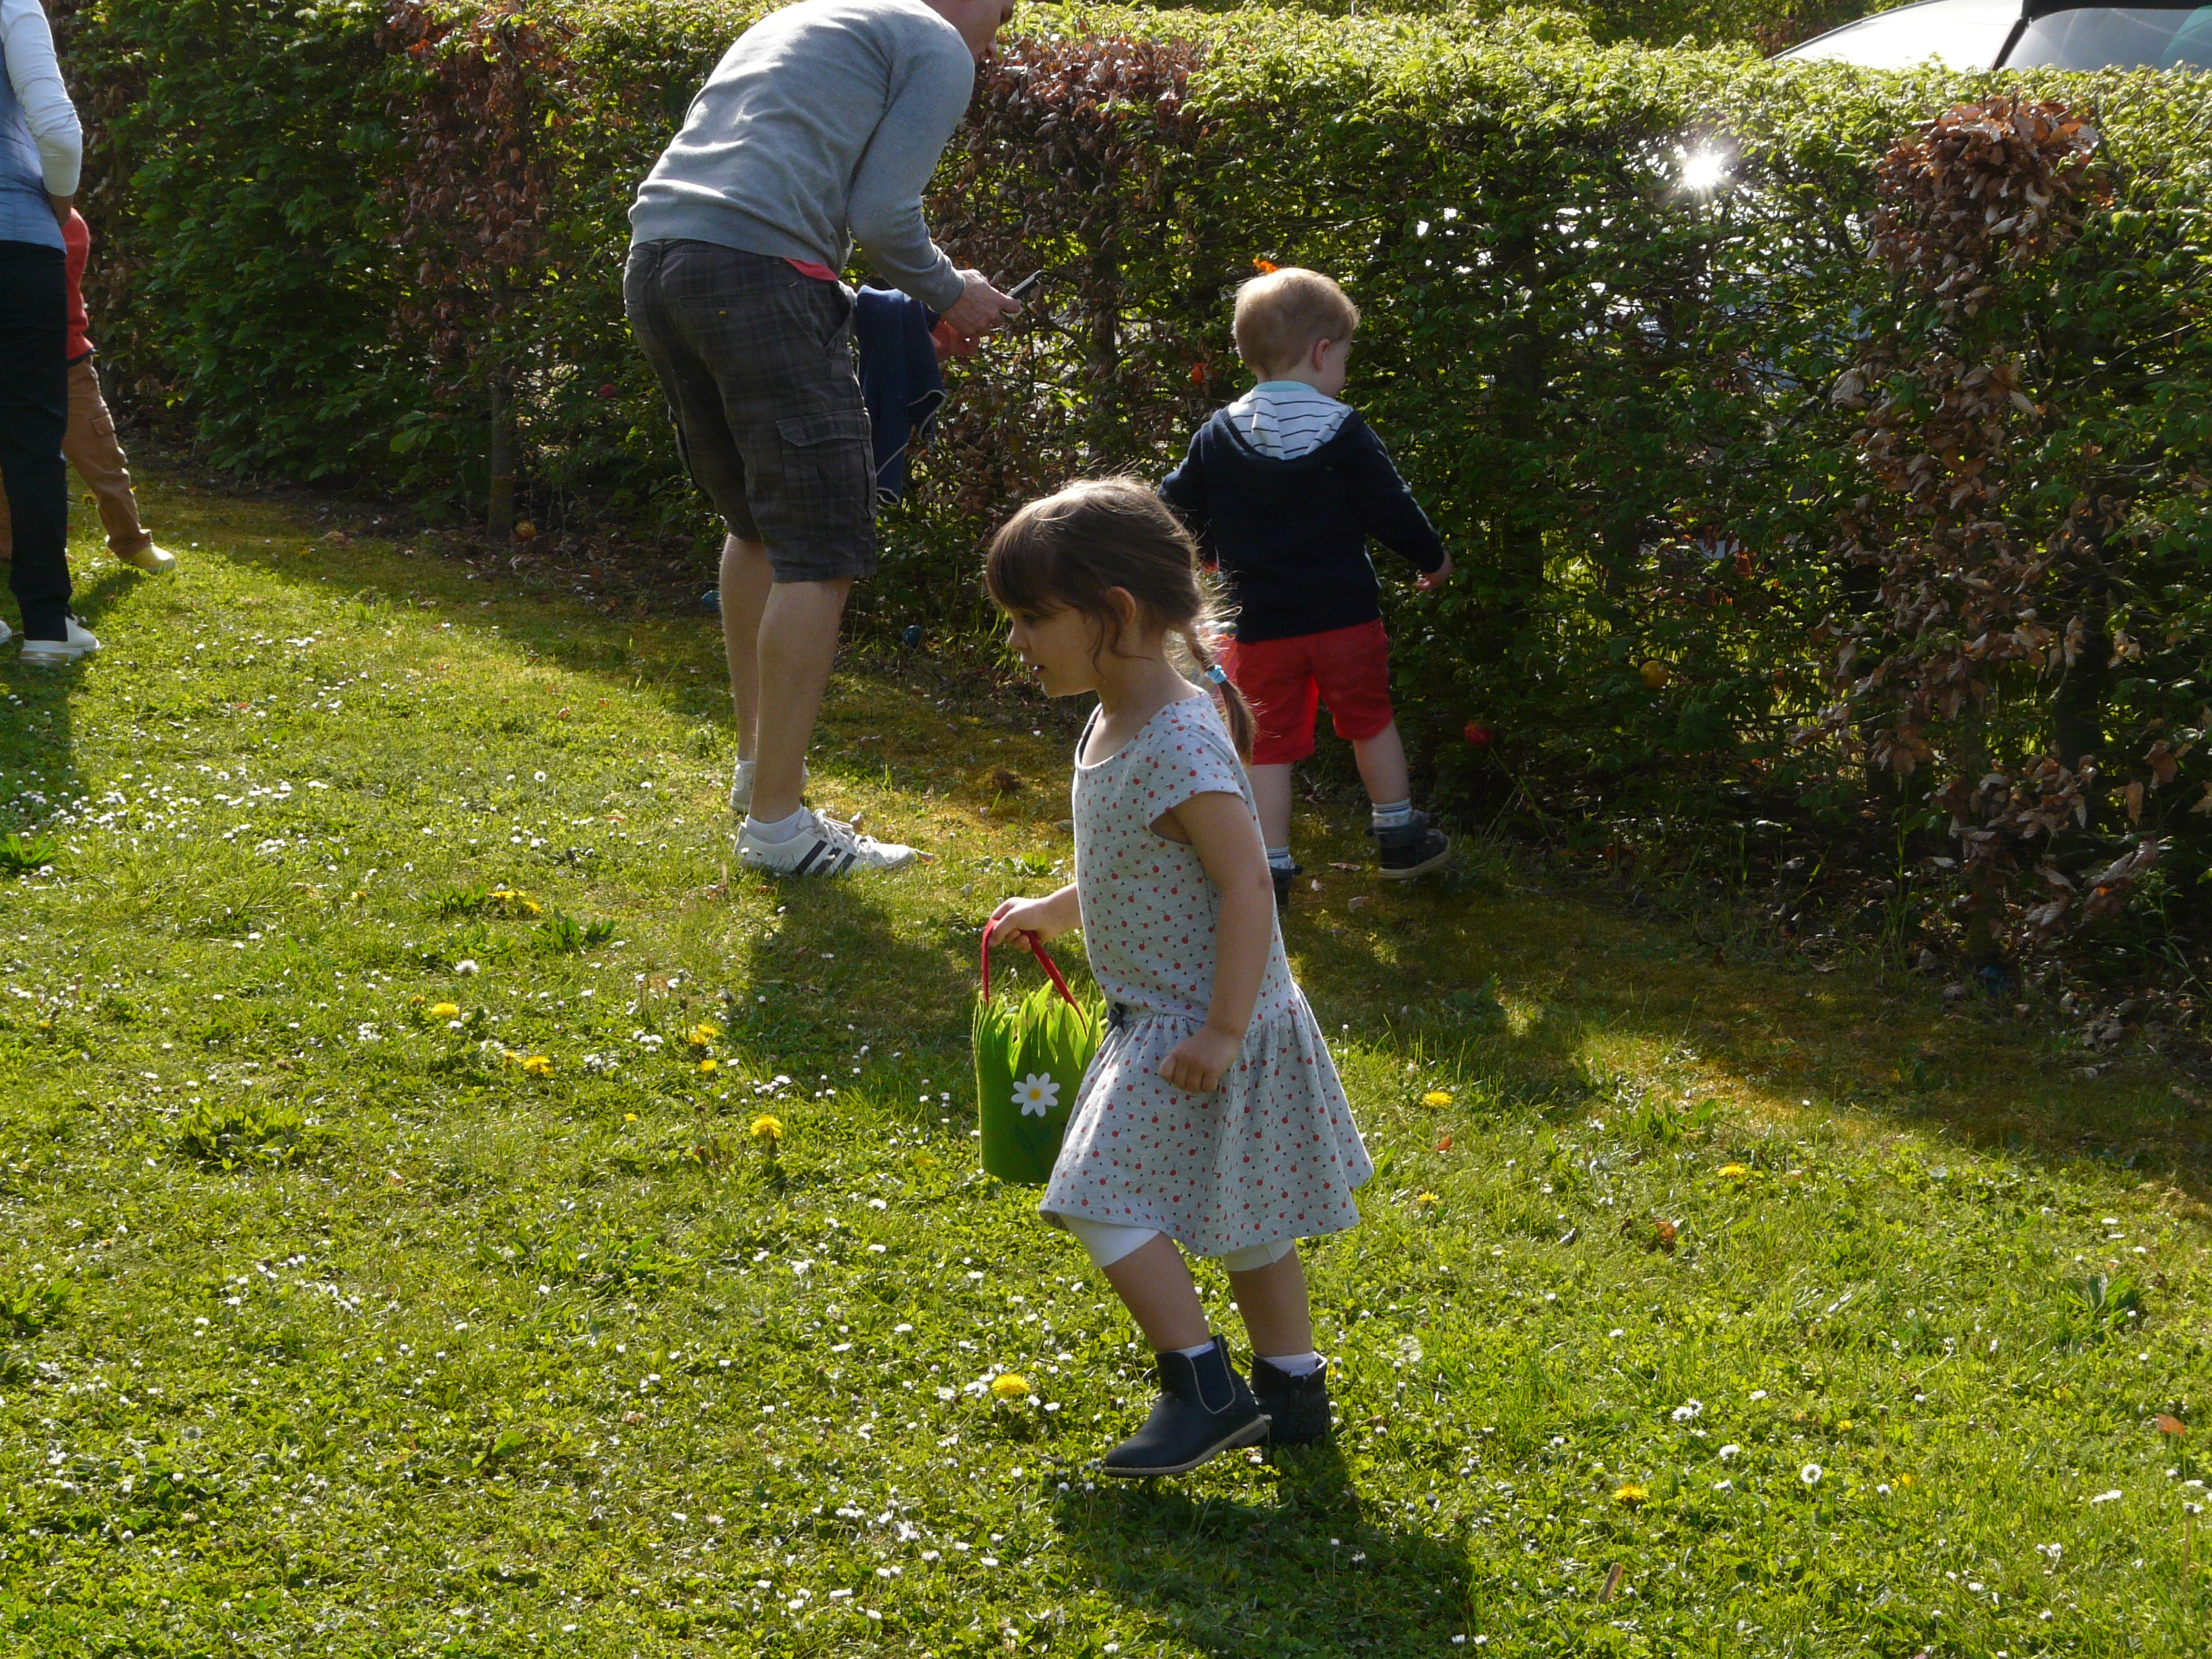 190422 chasse aux oeufs FR (3)